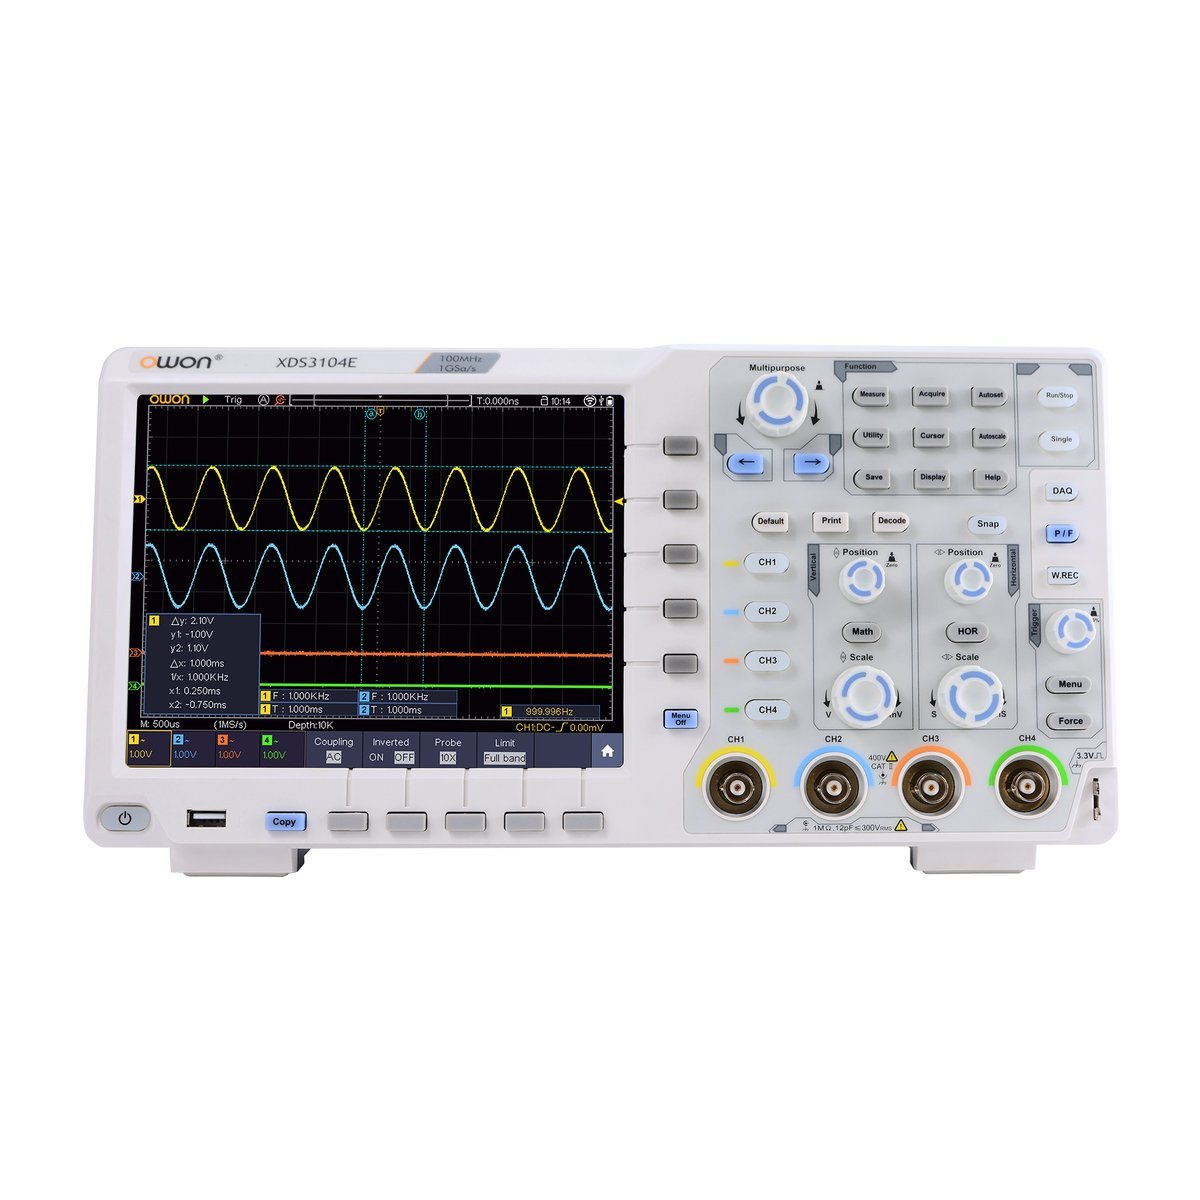 OWON XDS3104E Digital Oscilloscope 100Mhz DSO 4 Channels 1GS